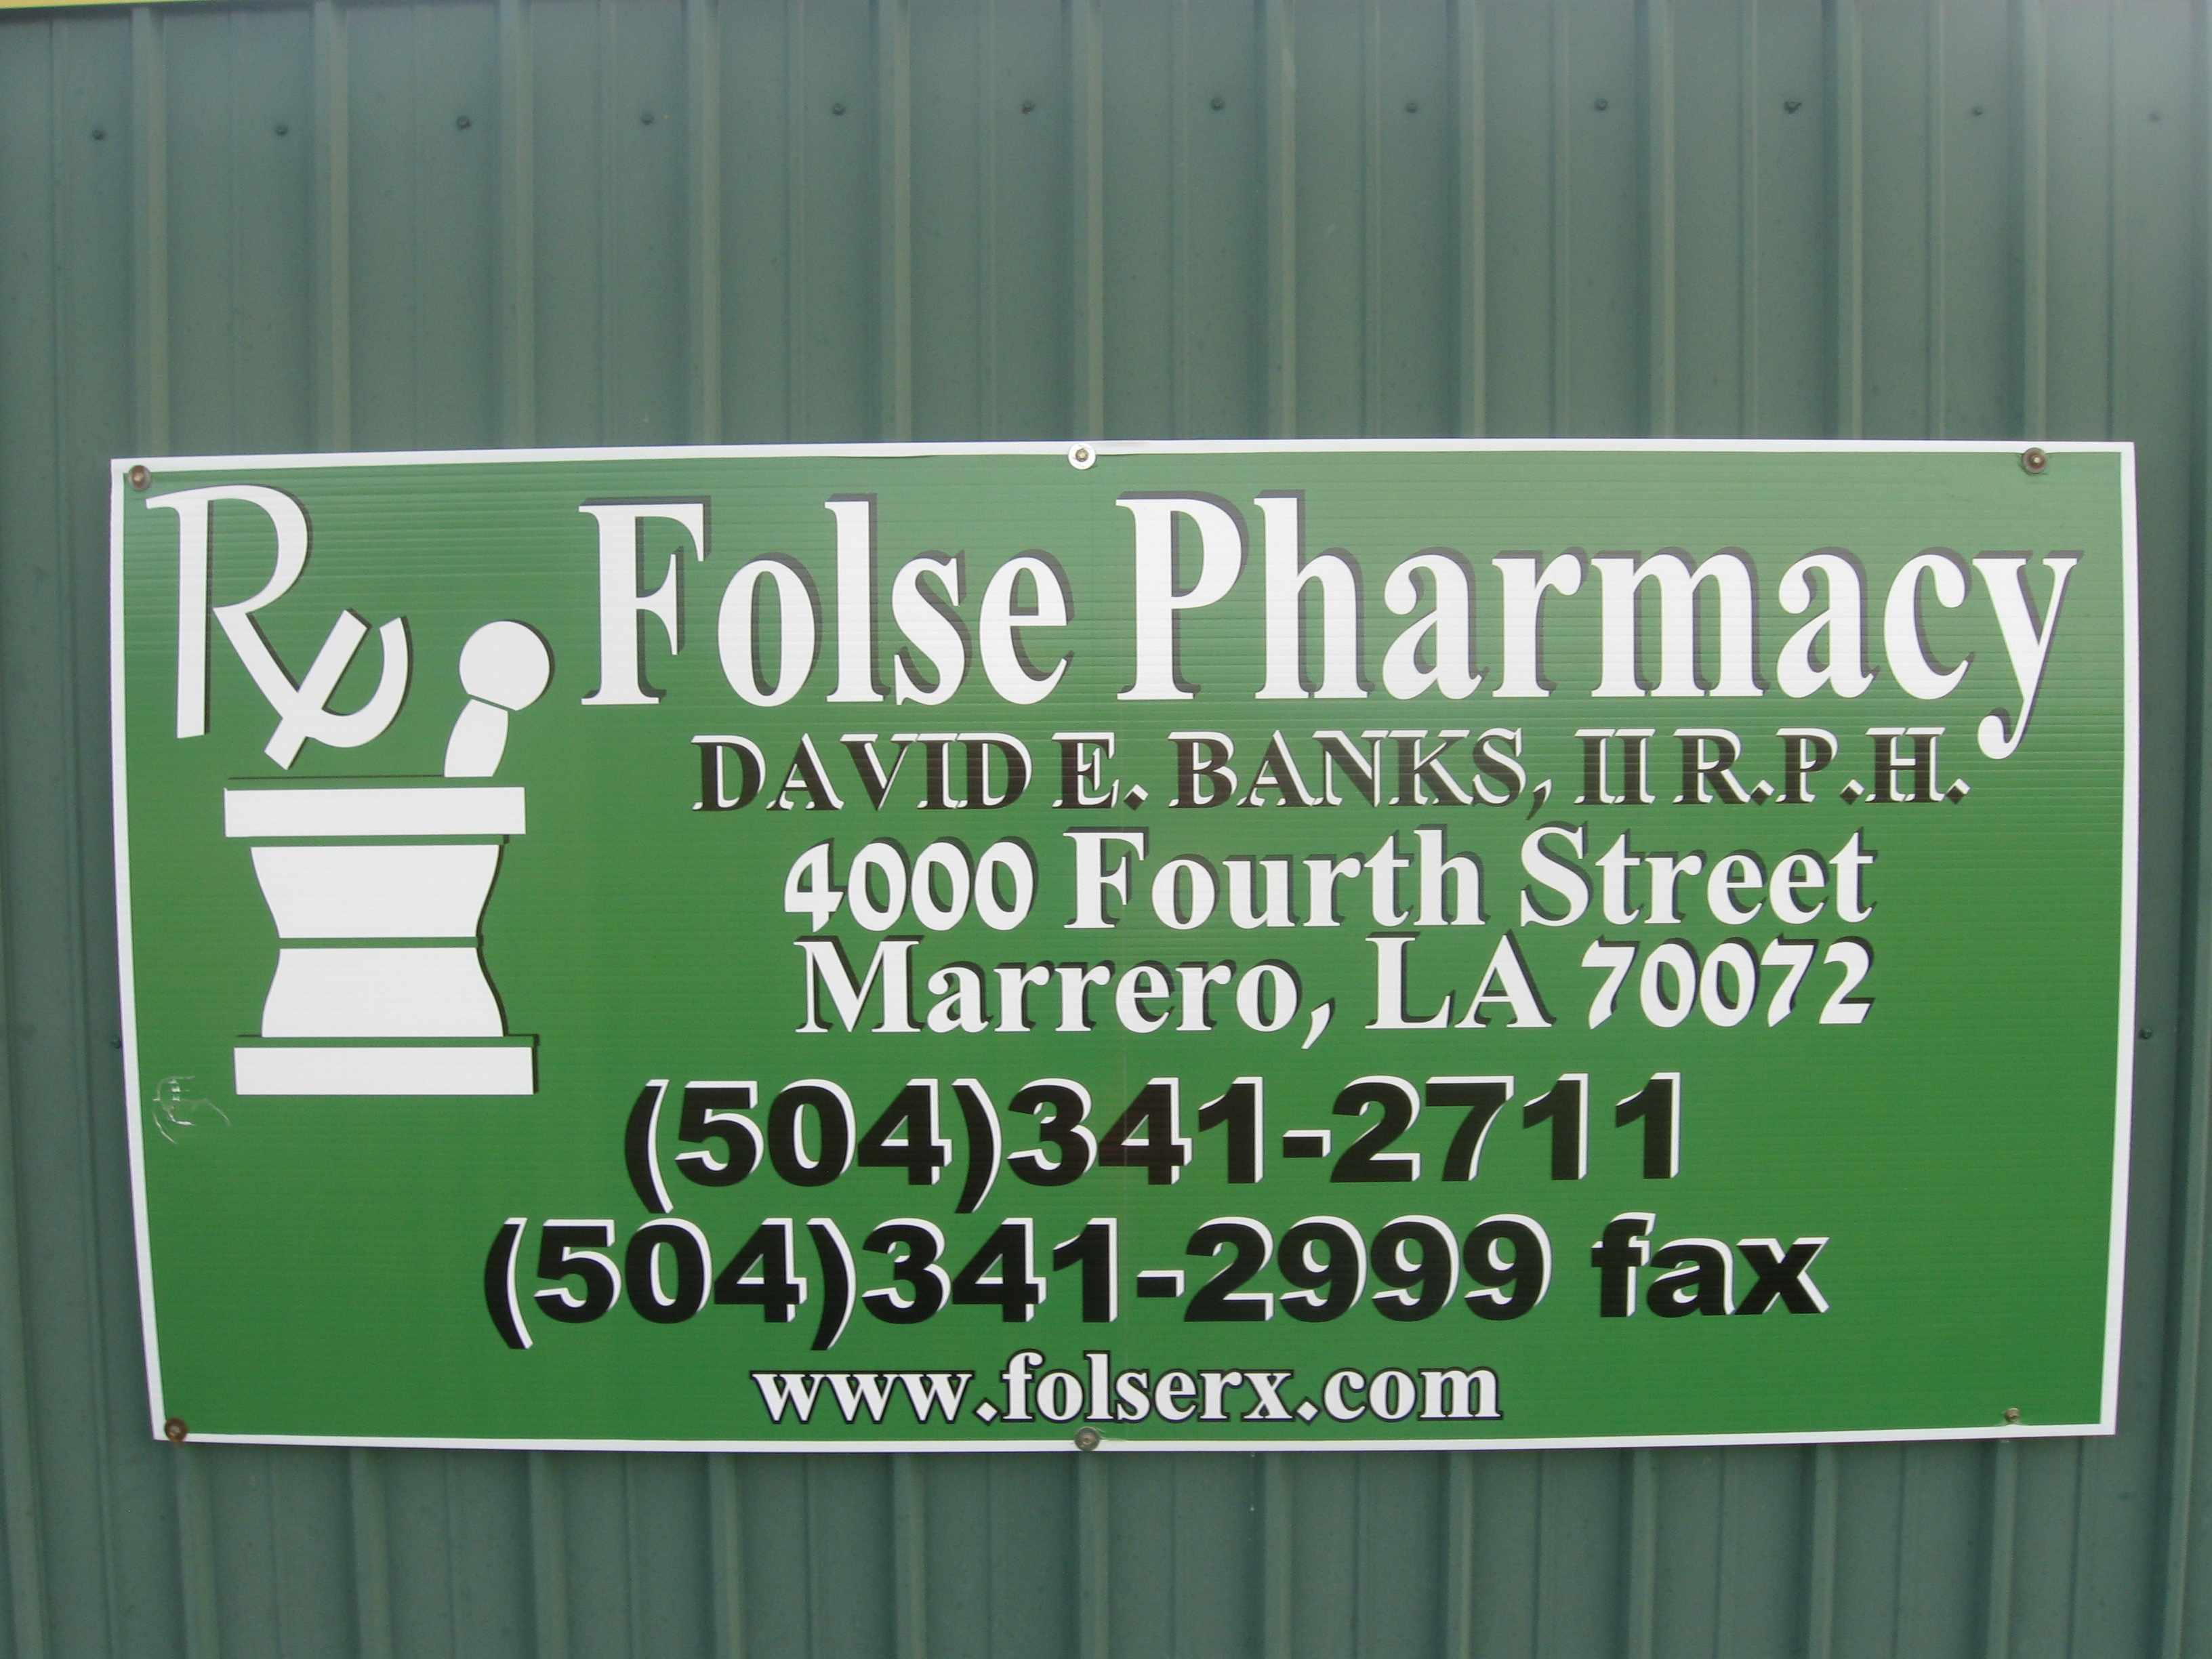 Folse Pharmacy